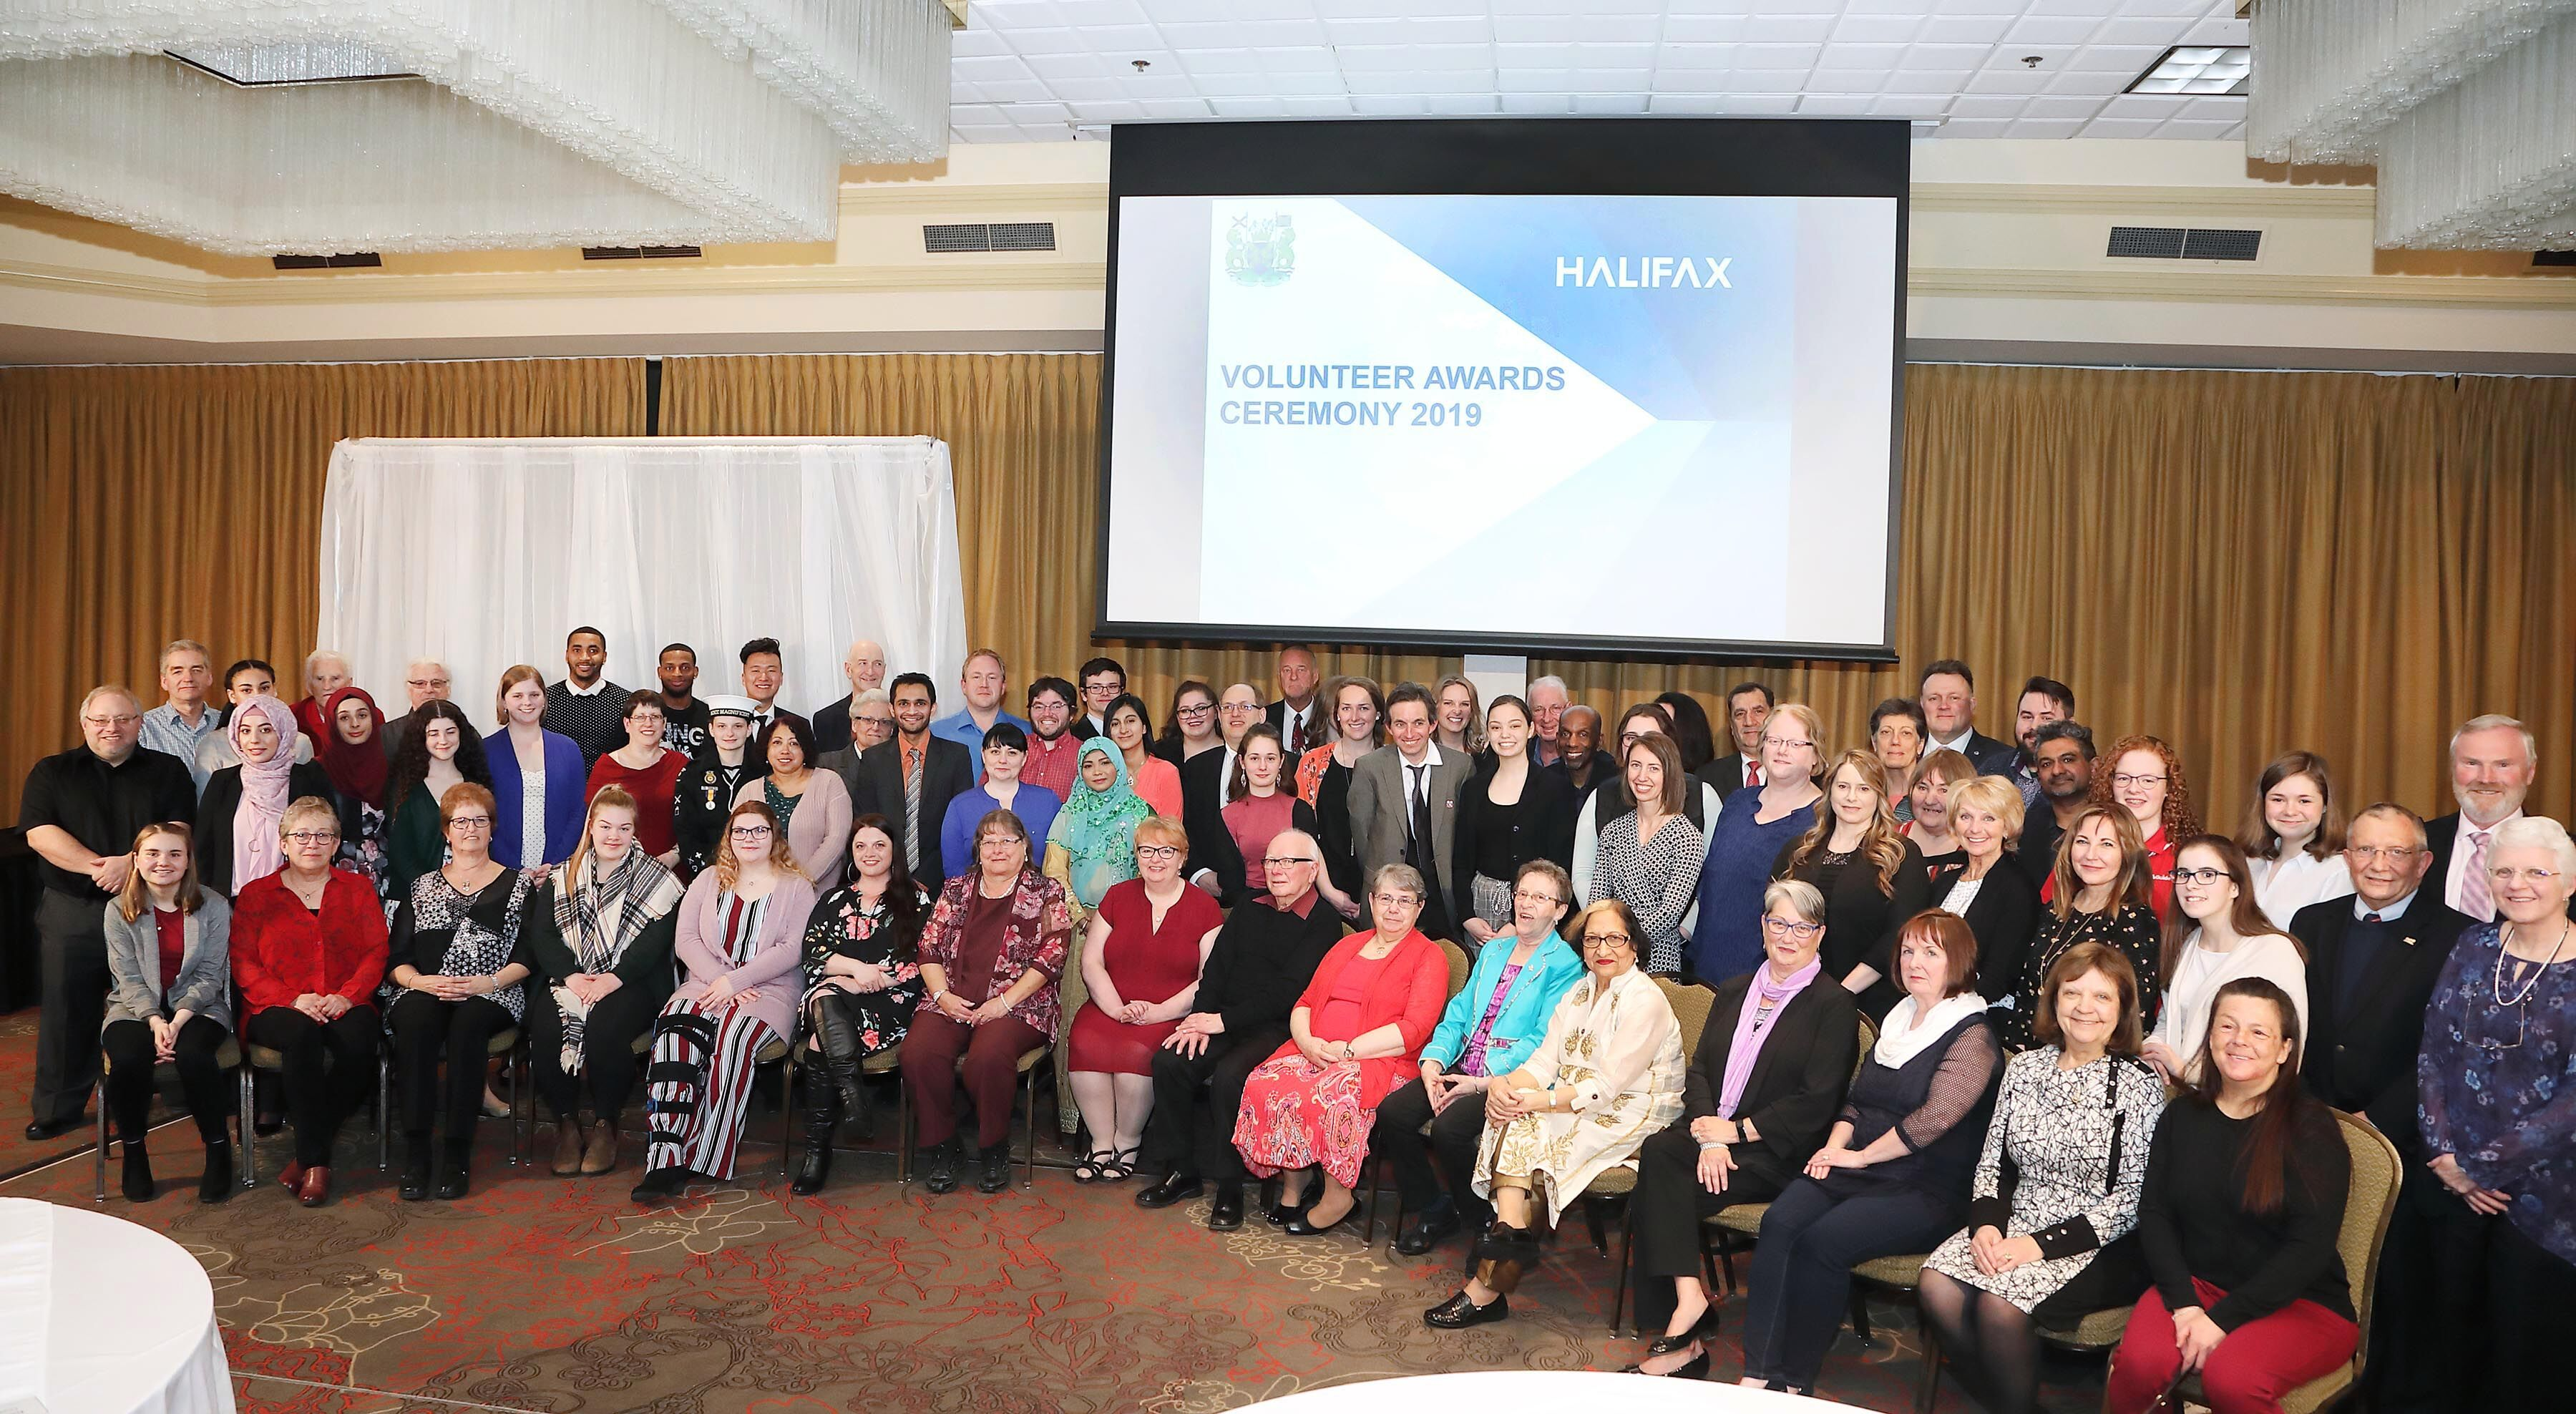 A group photo of the 2019 Volunteer Award winners